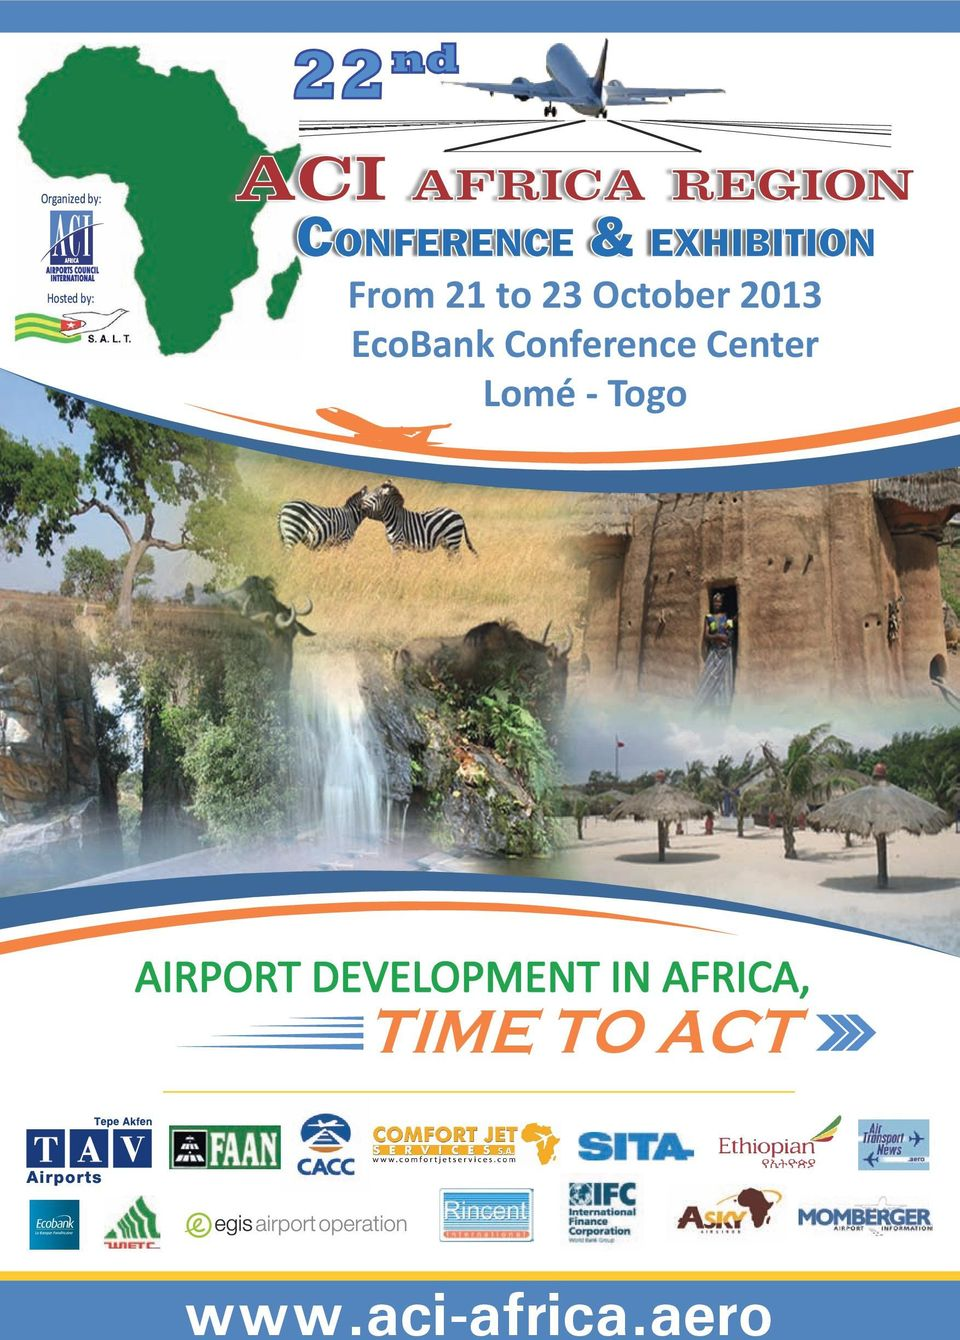 October 2013 EcoBank Conference Center Lomé